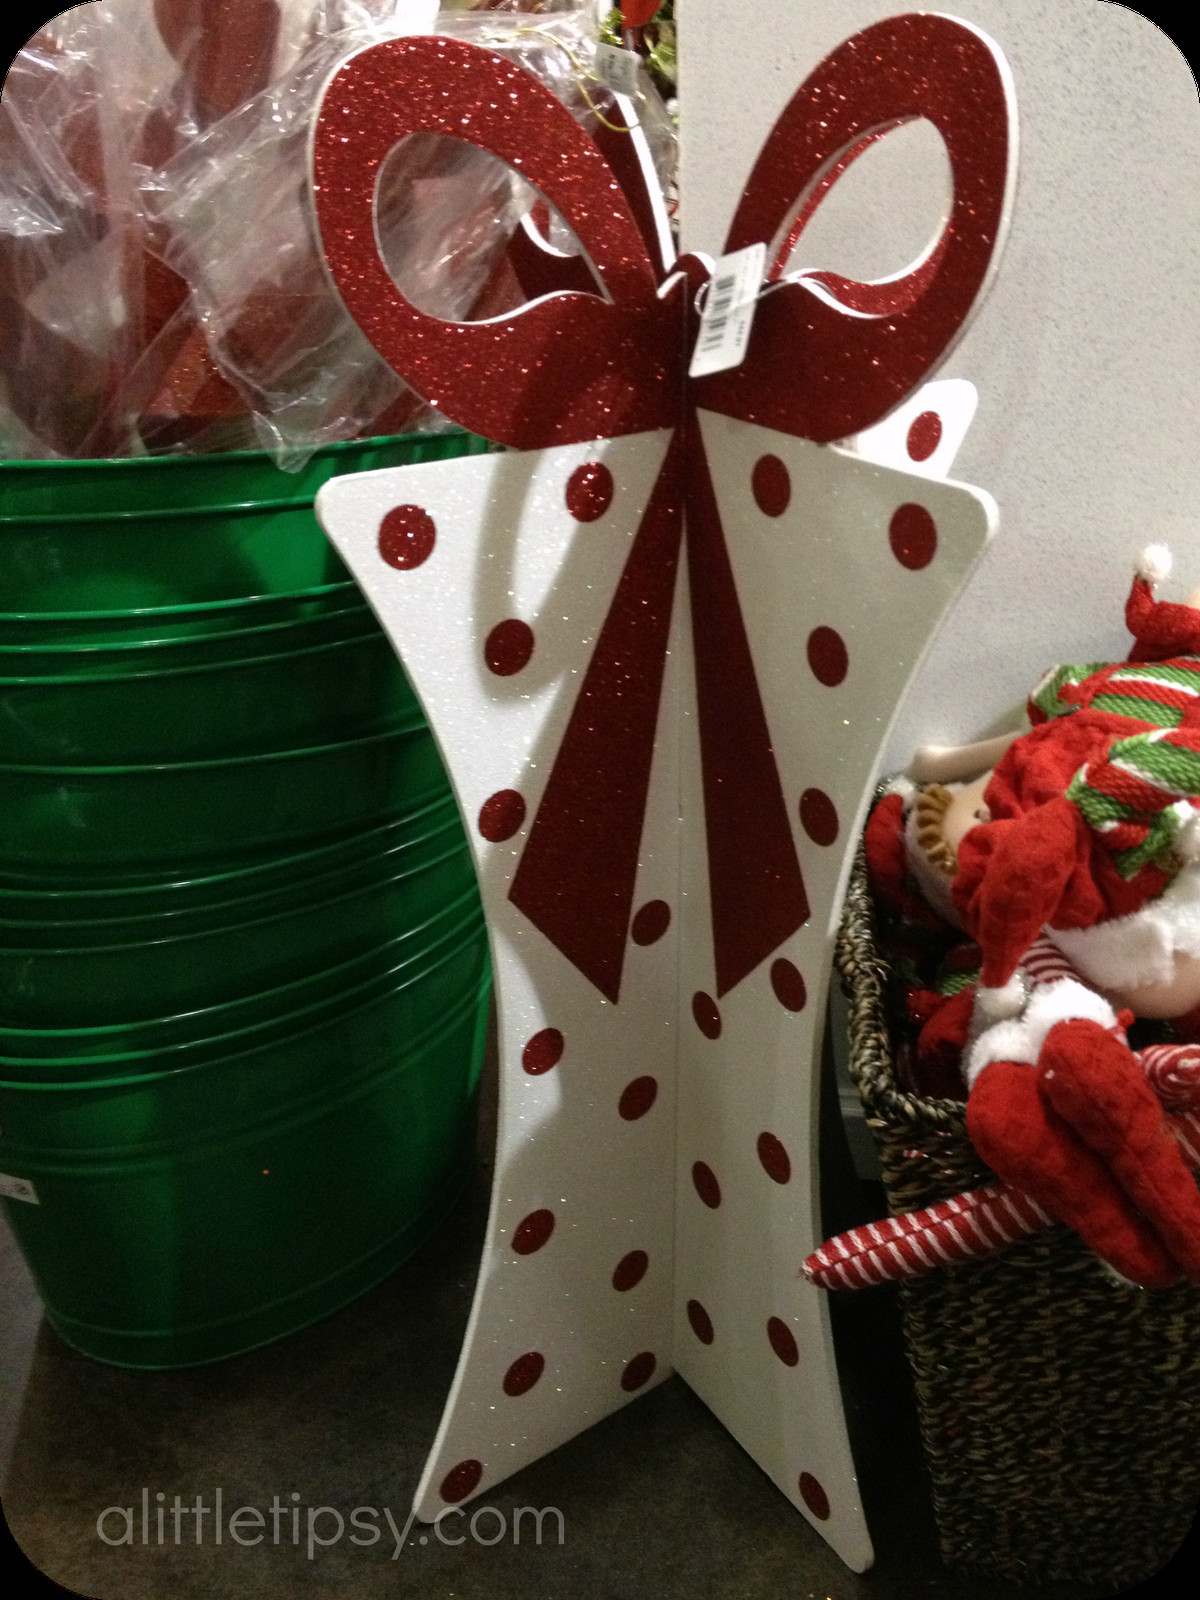 Best ideas about Christmas DIY Decoration Ideas . Save or Pin DECK THE HOLIDAY S 12 18 13 Now.